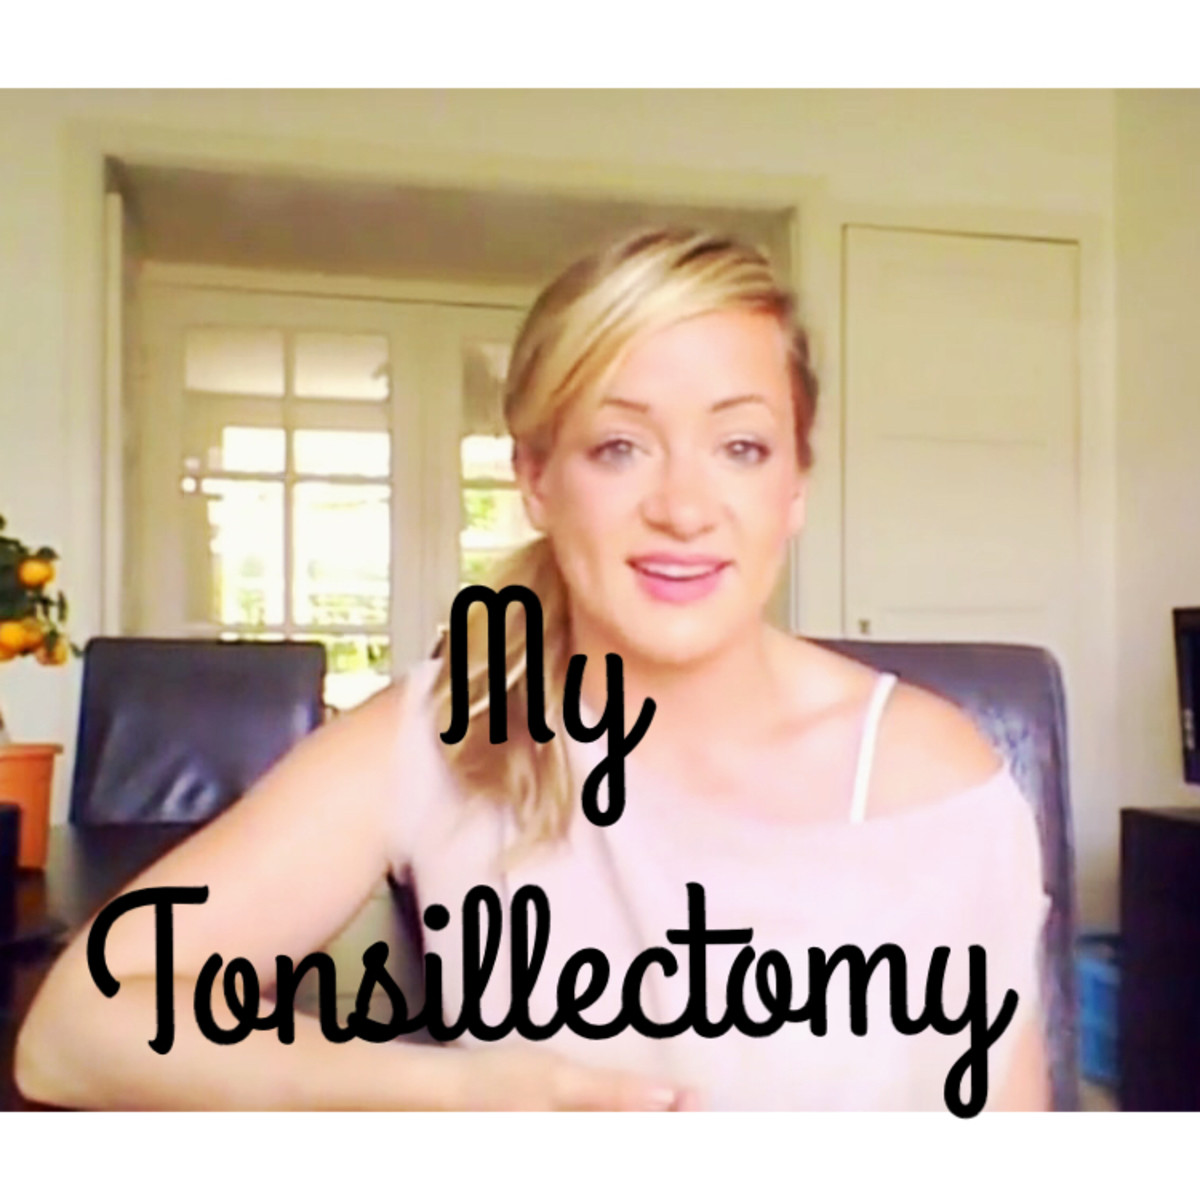 Tonsillectomy: The Dos and Don'ts, and How To Recover Quickly